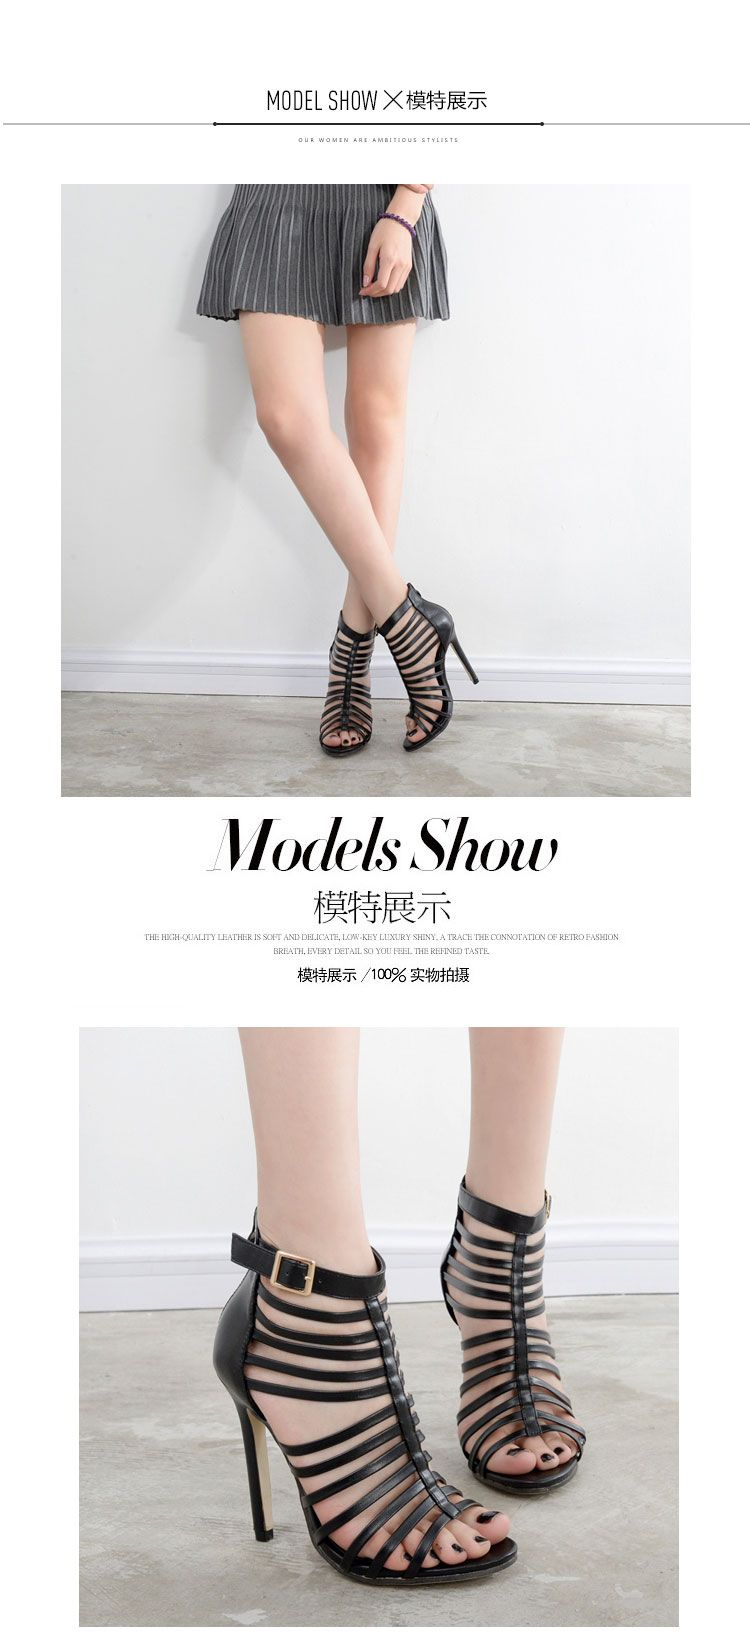 78026c89f Aliexpress.com   Buy Hot Sale Pumps Summer Fine with Ornamental Engraving  Airspeed Style Club Roma Hollow Out Sandals Heels for Women from Reliable  heels ...